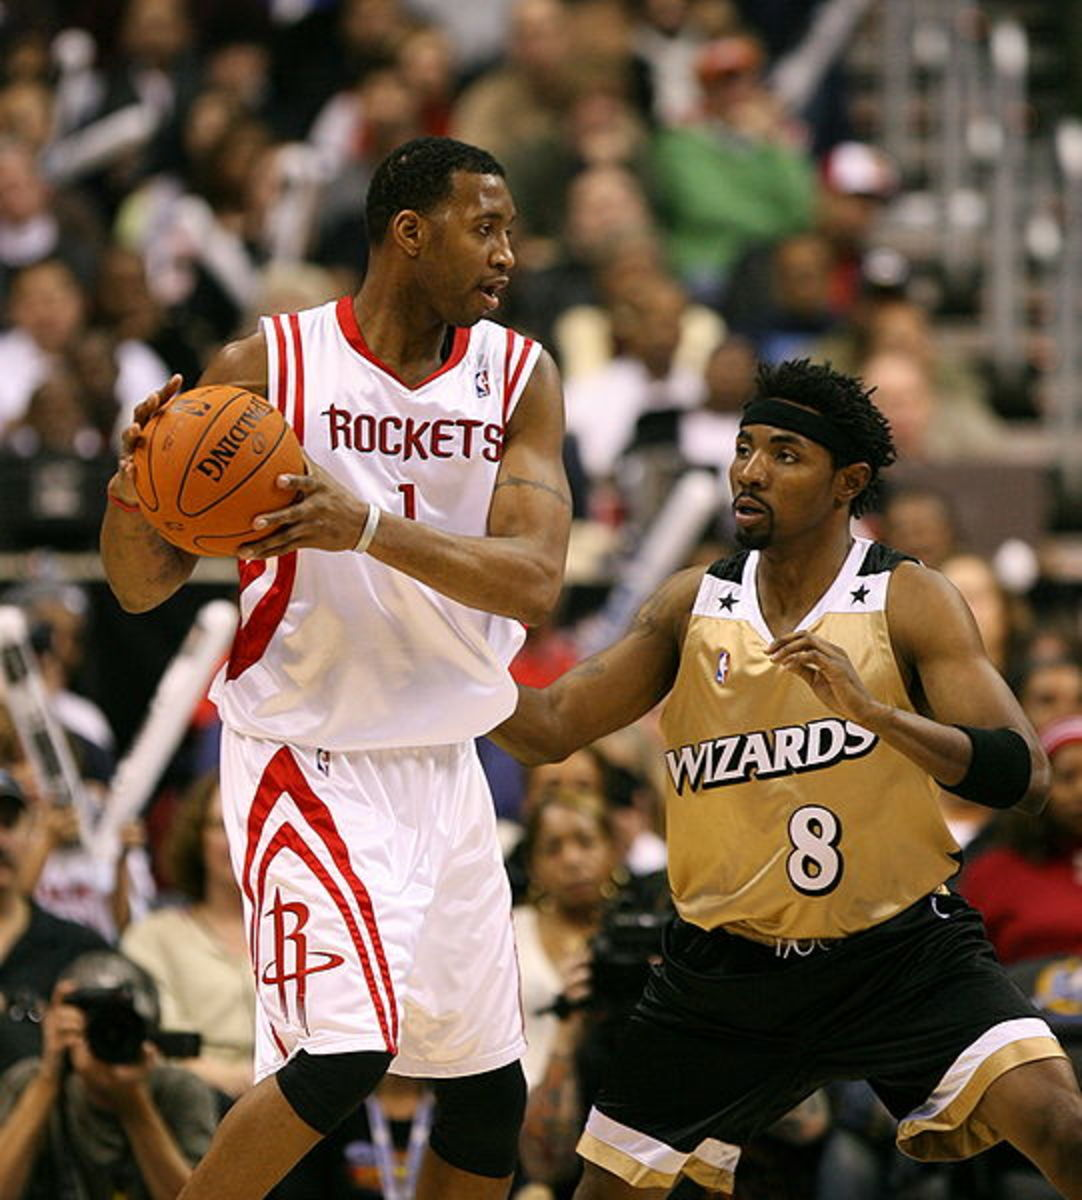 Tracy McGrady playing for the Houston Rockets.